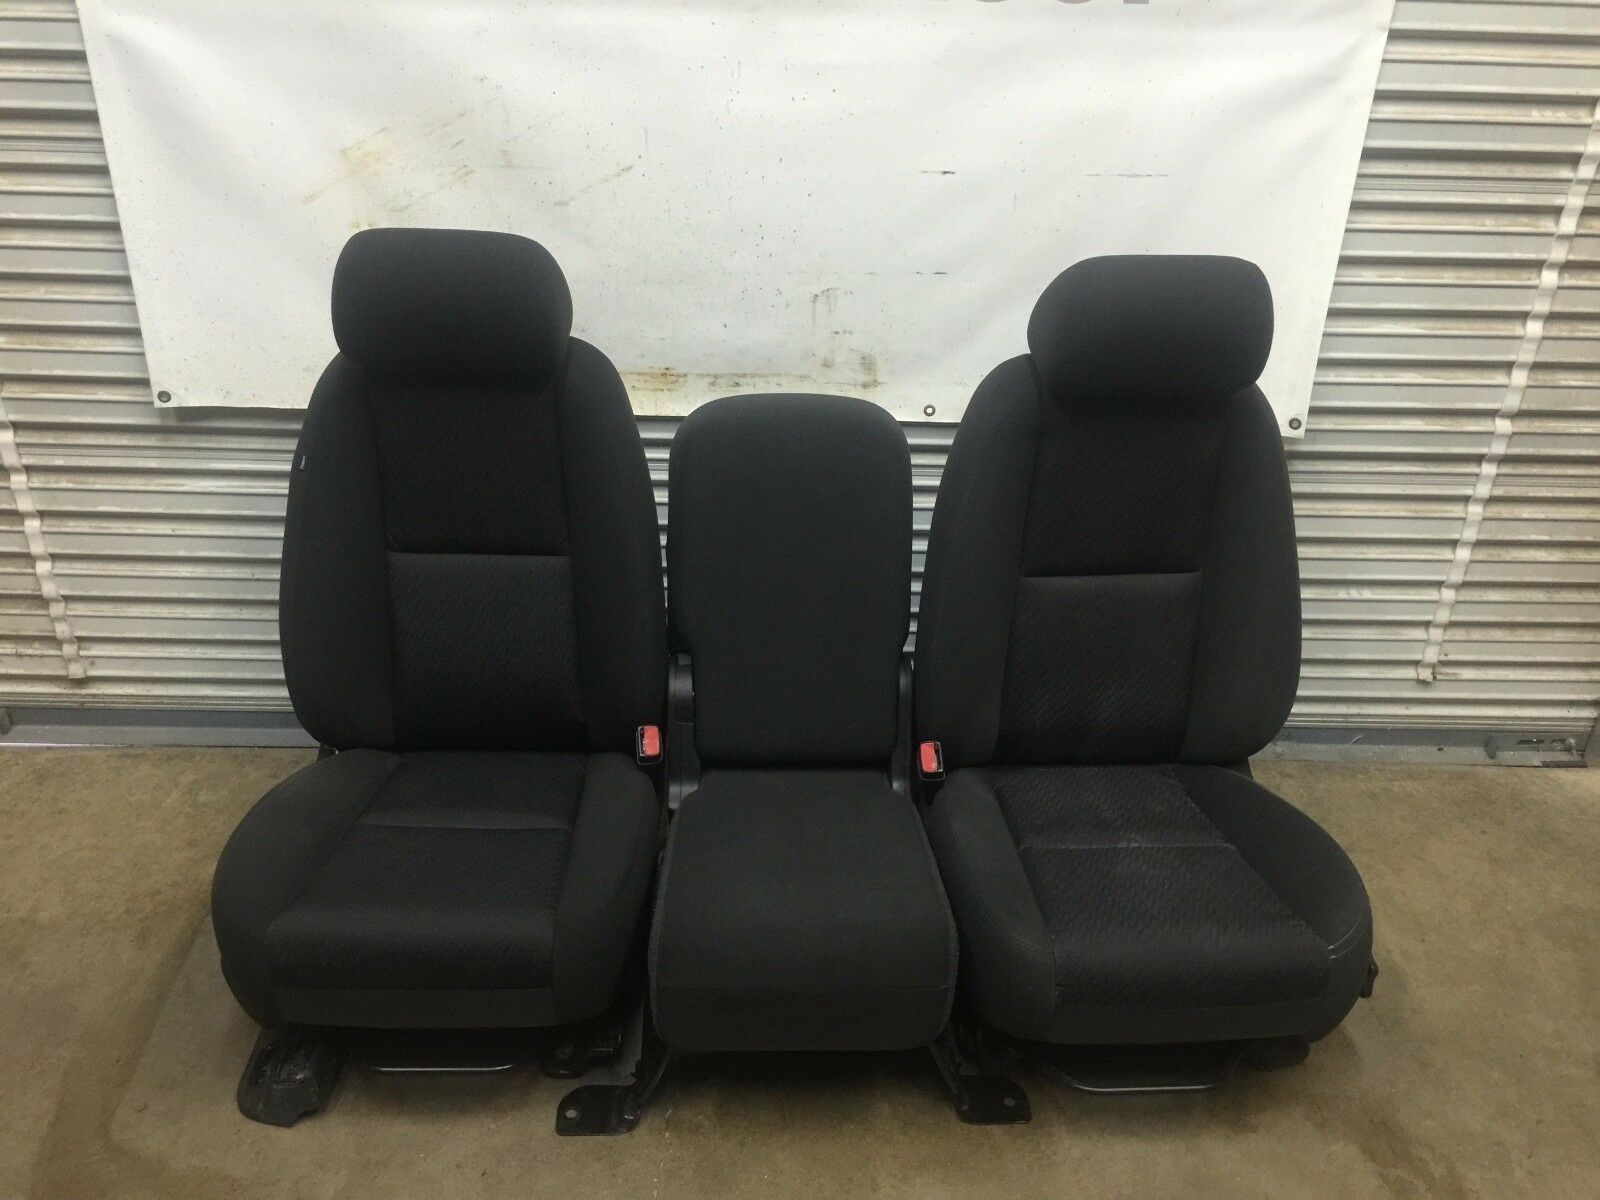 2007 chevy tahoe 3rd row seats. Black Bedroom Furniture Sets. Home Design Ideas